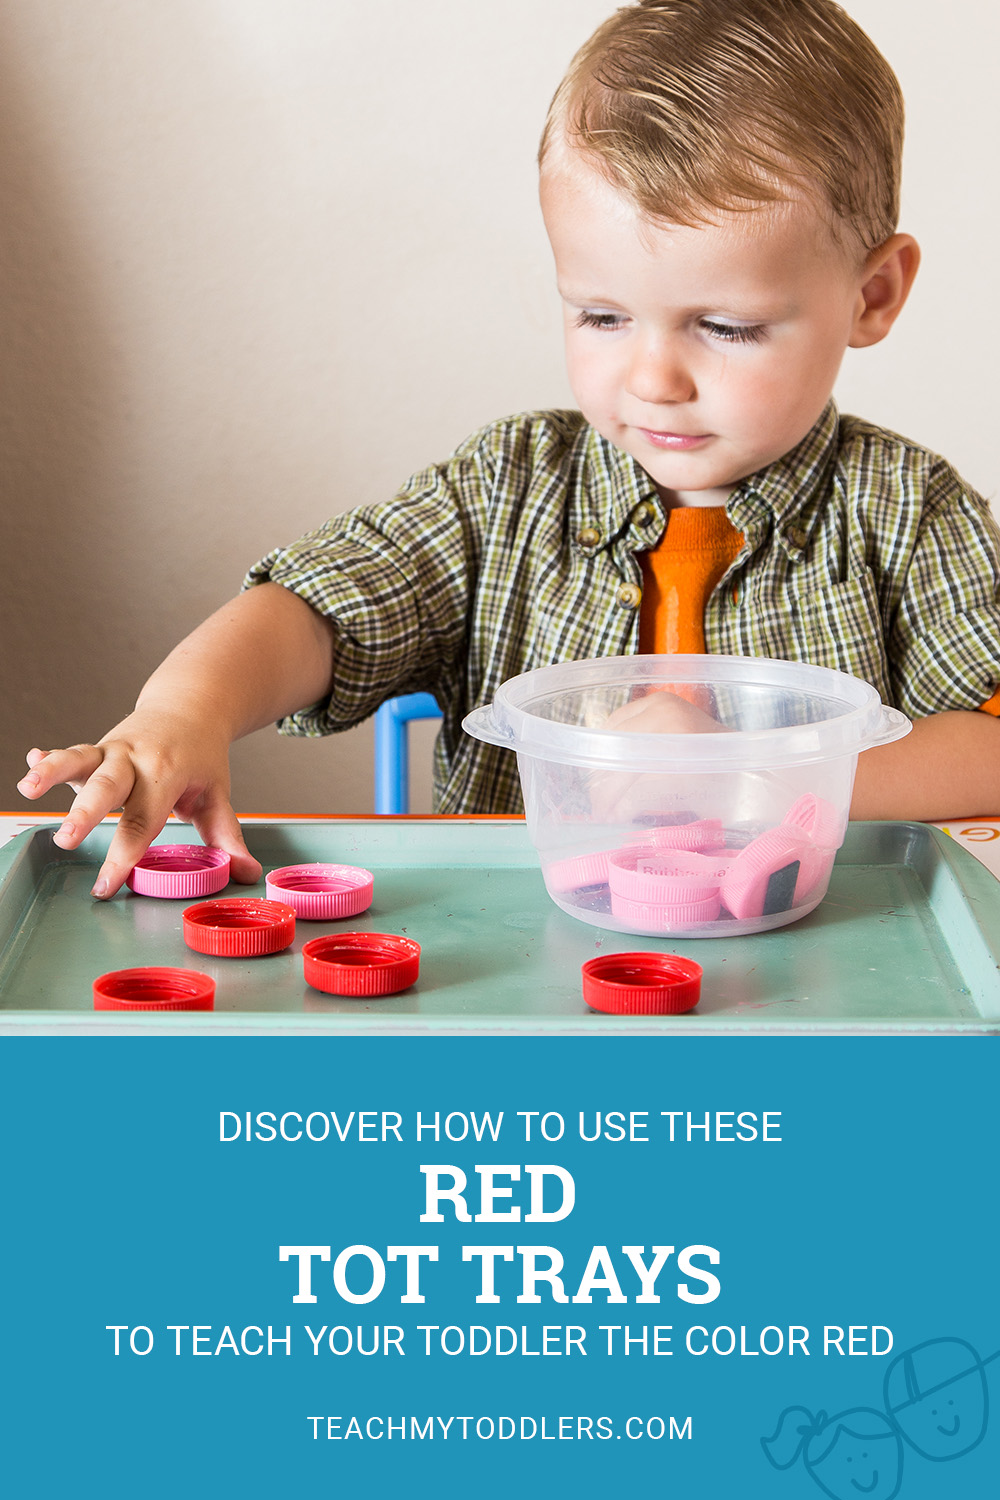 Discover how to use these red color trays to teach your toddlers the color red